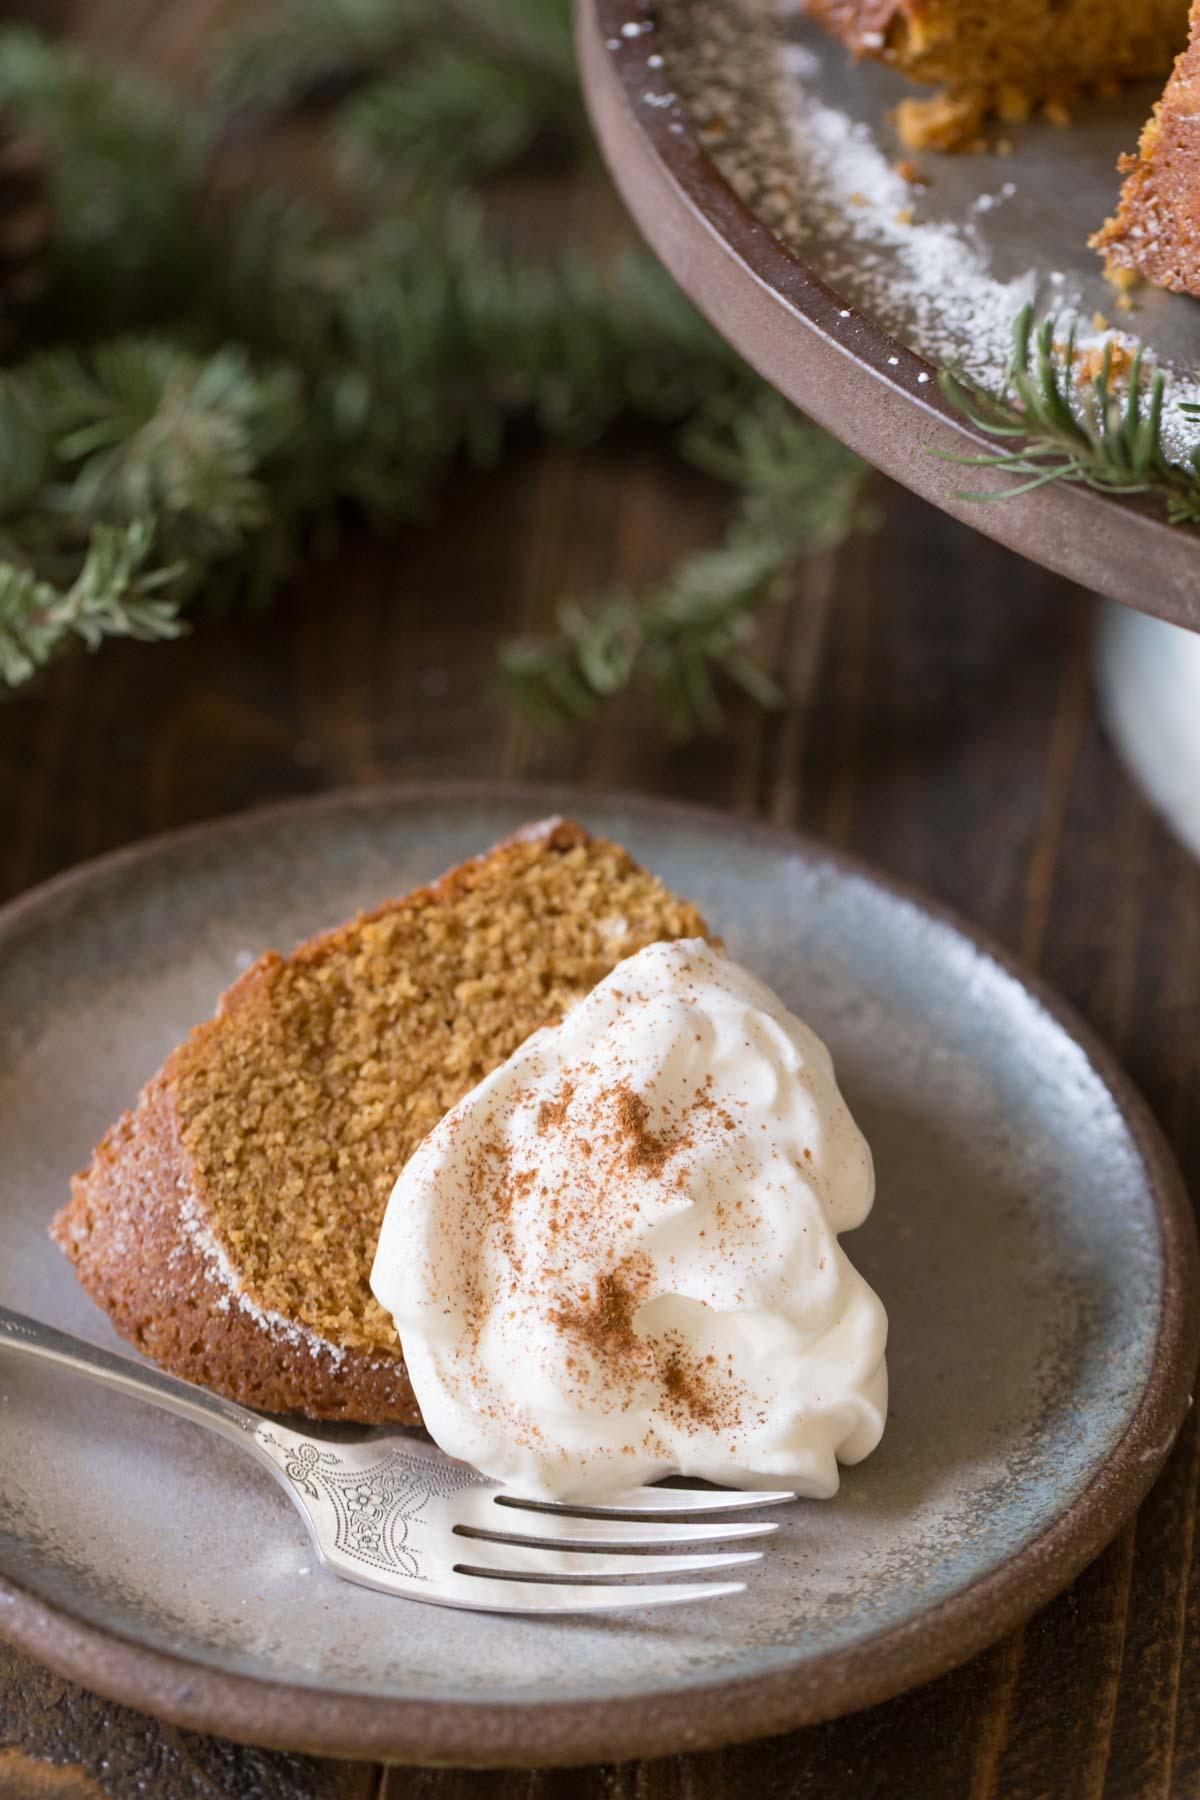 This Gingerbread Bundt Cake has a sweet and tender crumb that is perfectly spiced with cinnamon, ginger and cloves. Freshly whipped and sweetened cream is the perfect topping...